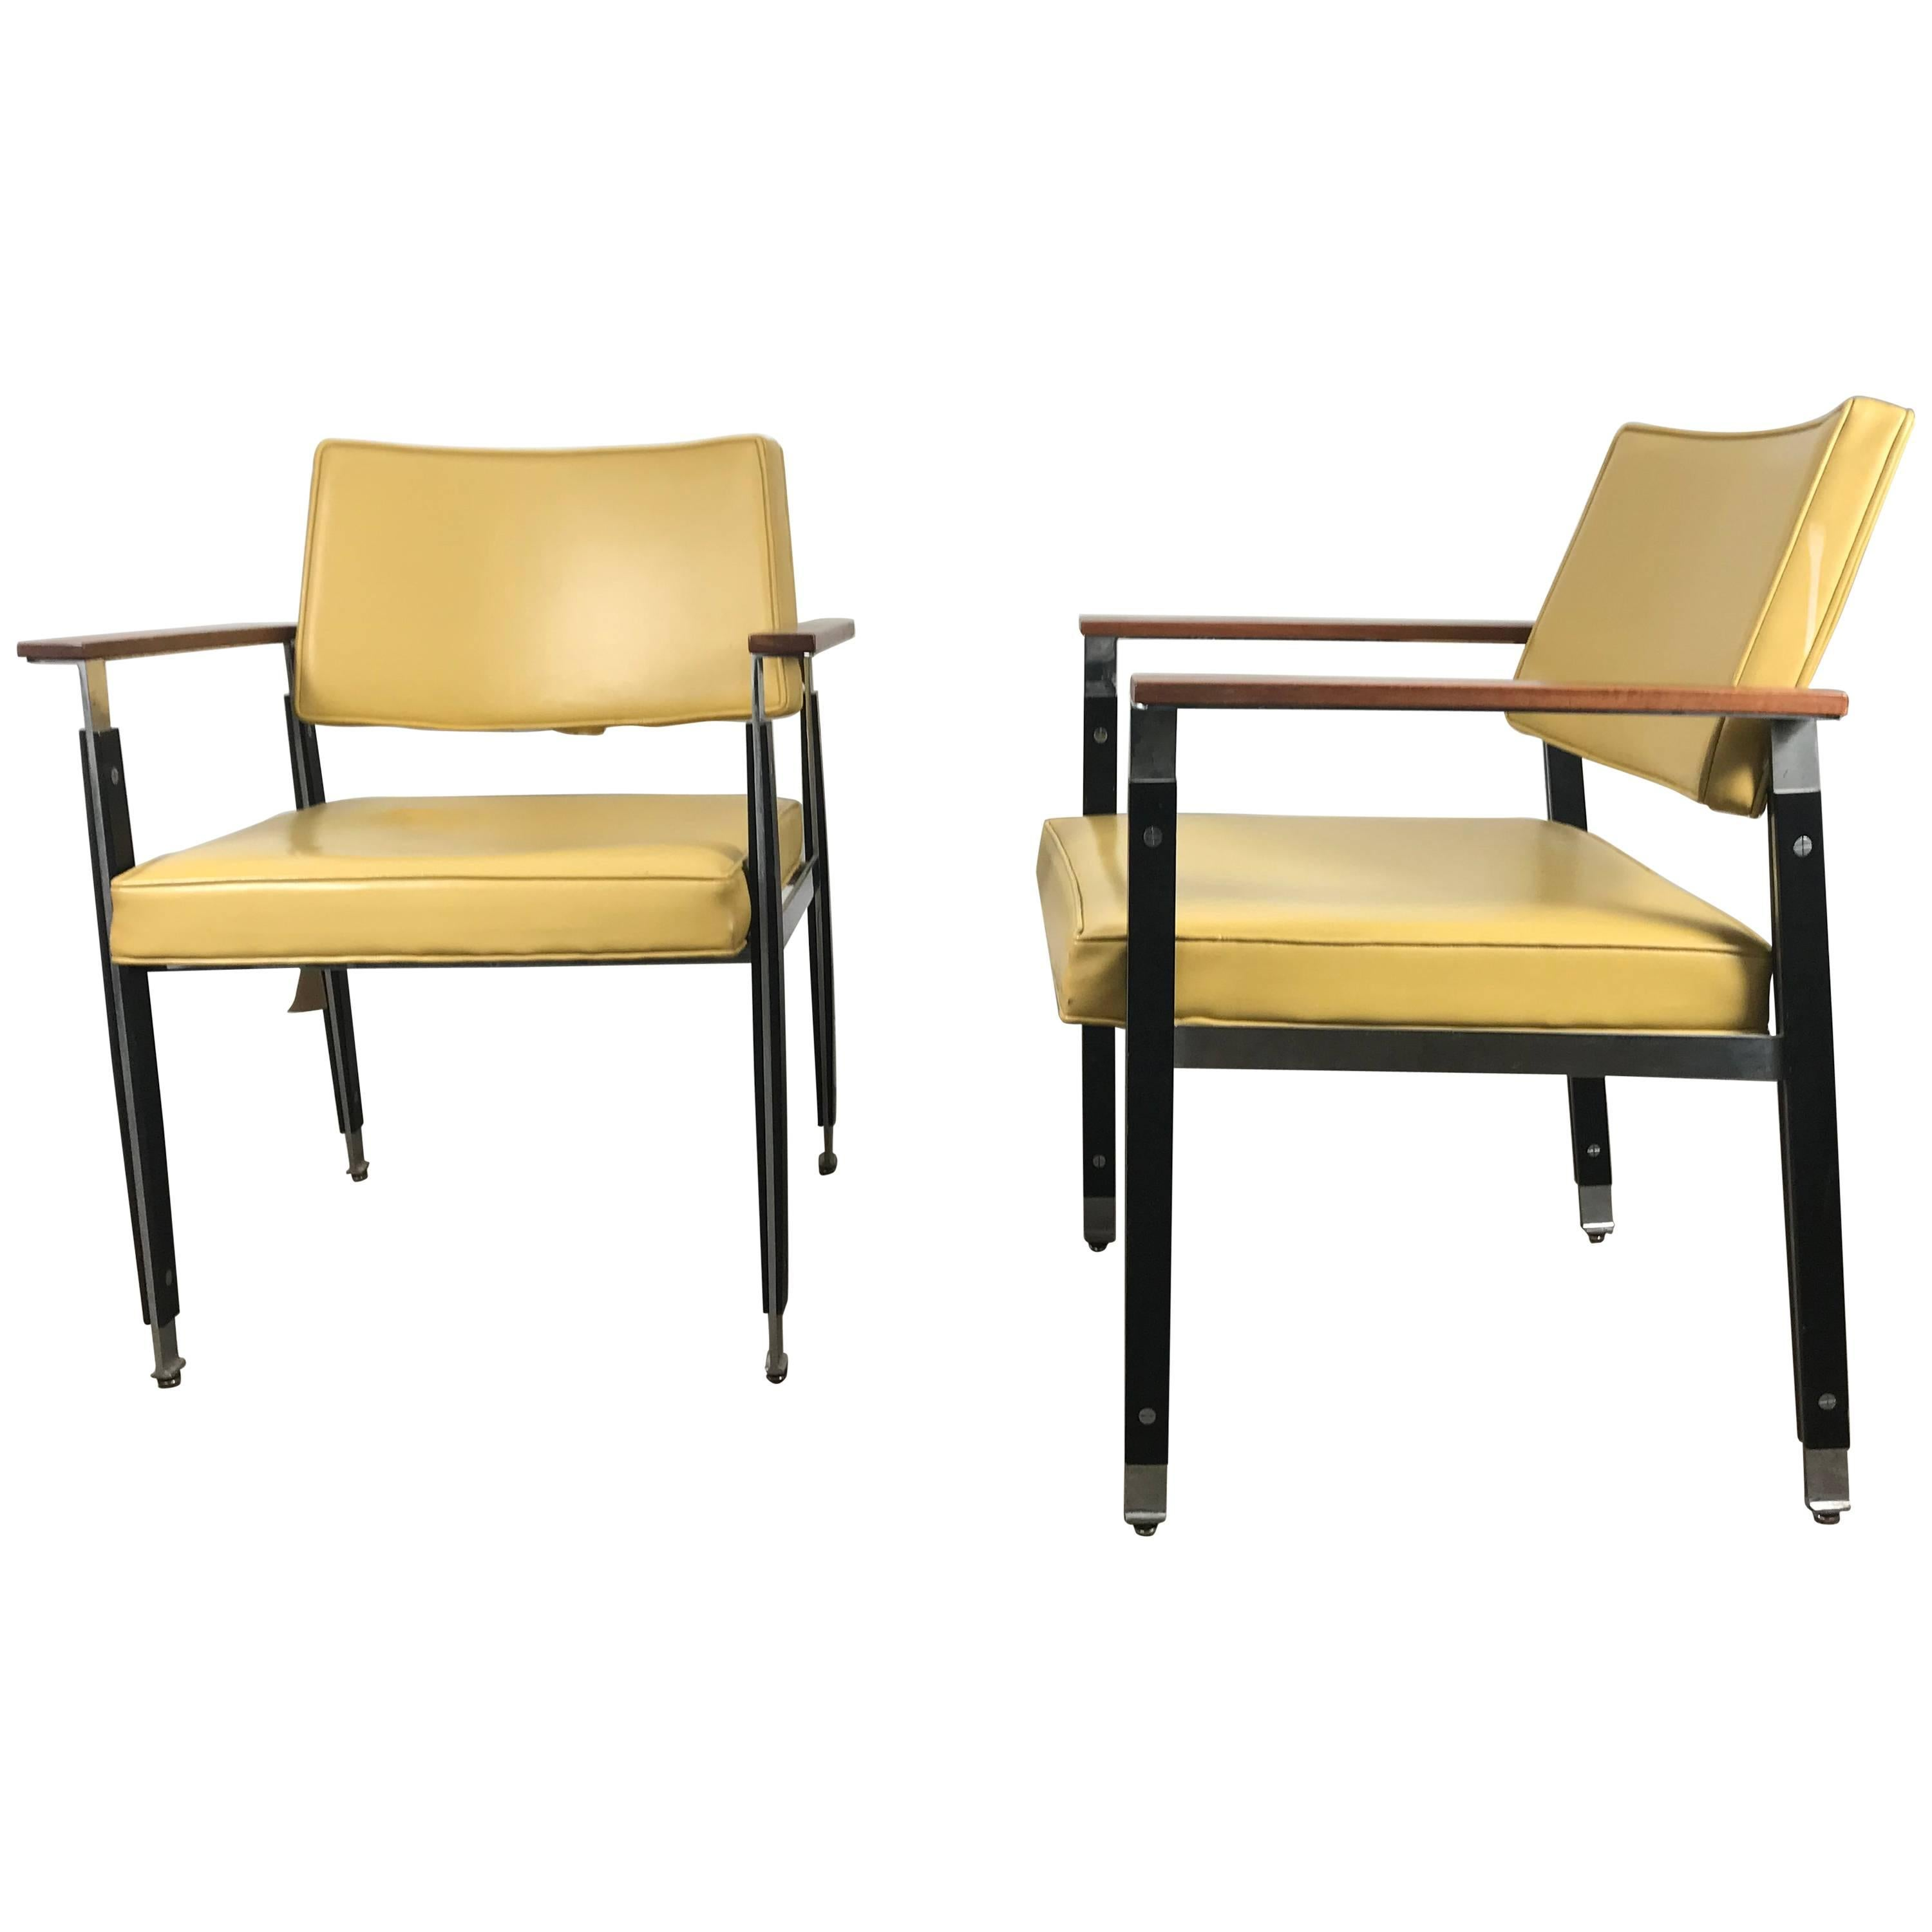 Classic Pair of Modernist Armchairs by Robert John Stainless Steel